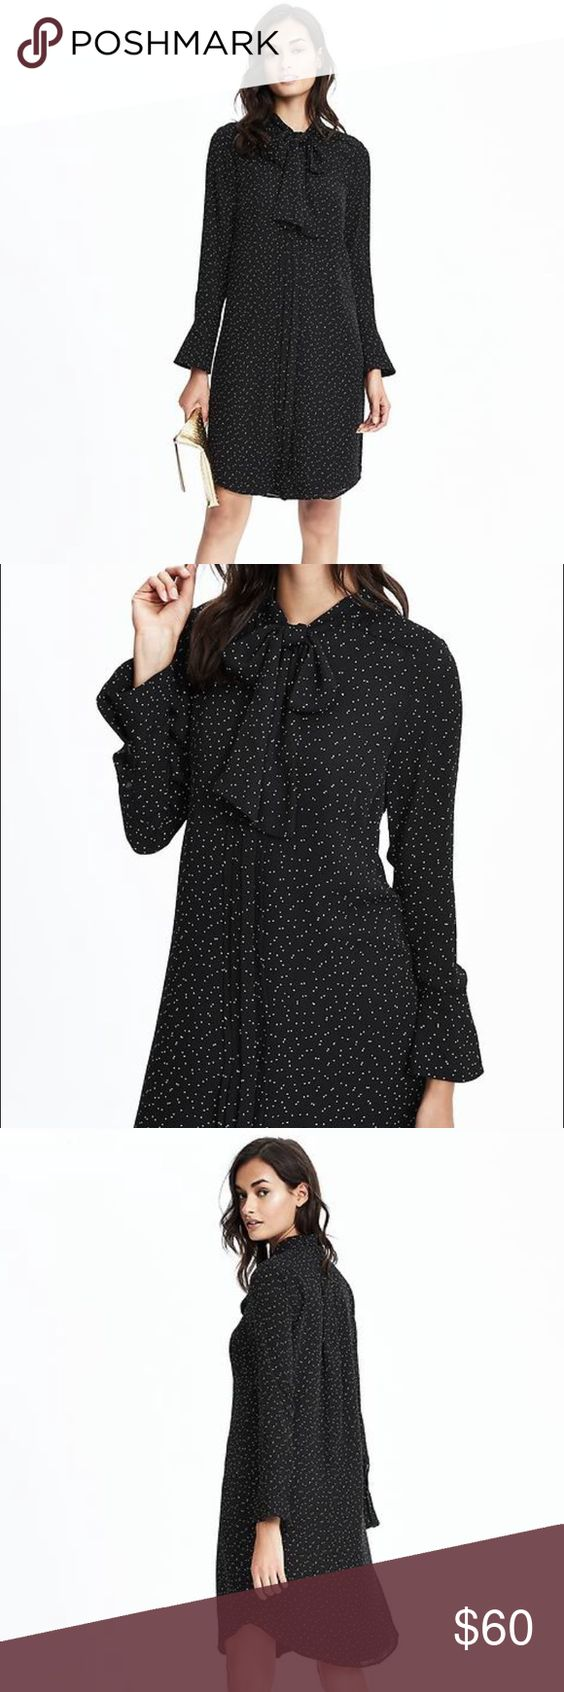 BNWT Banana Republic speckled tie neck dress Sz S Brand new with tags Banana Republic speckled tie neck dress. Gorgeous dress. Black with little white dots. Tie neck (or leave it open). Never worn! Size small. Banana Republic Dresses Long Sleeve